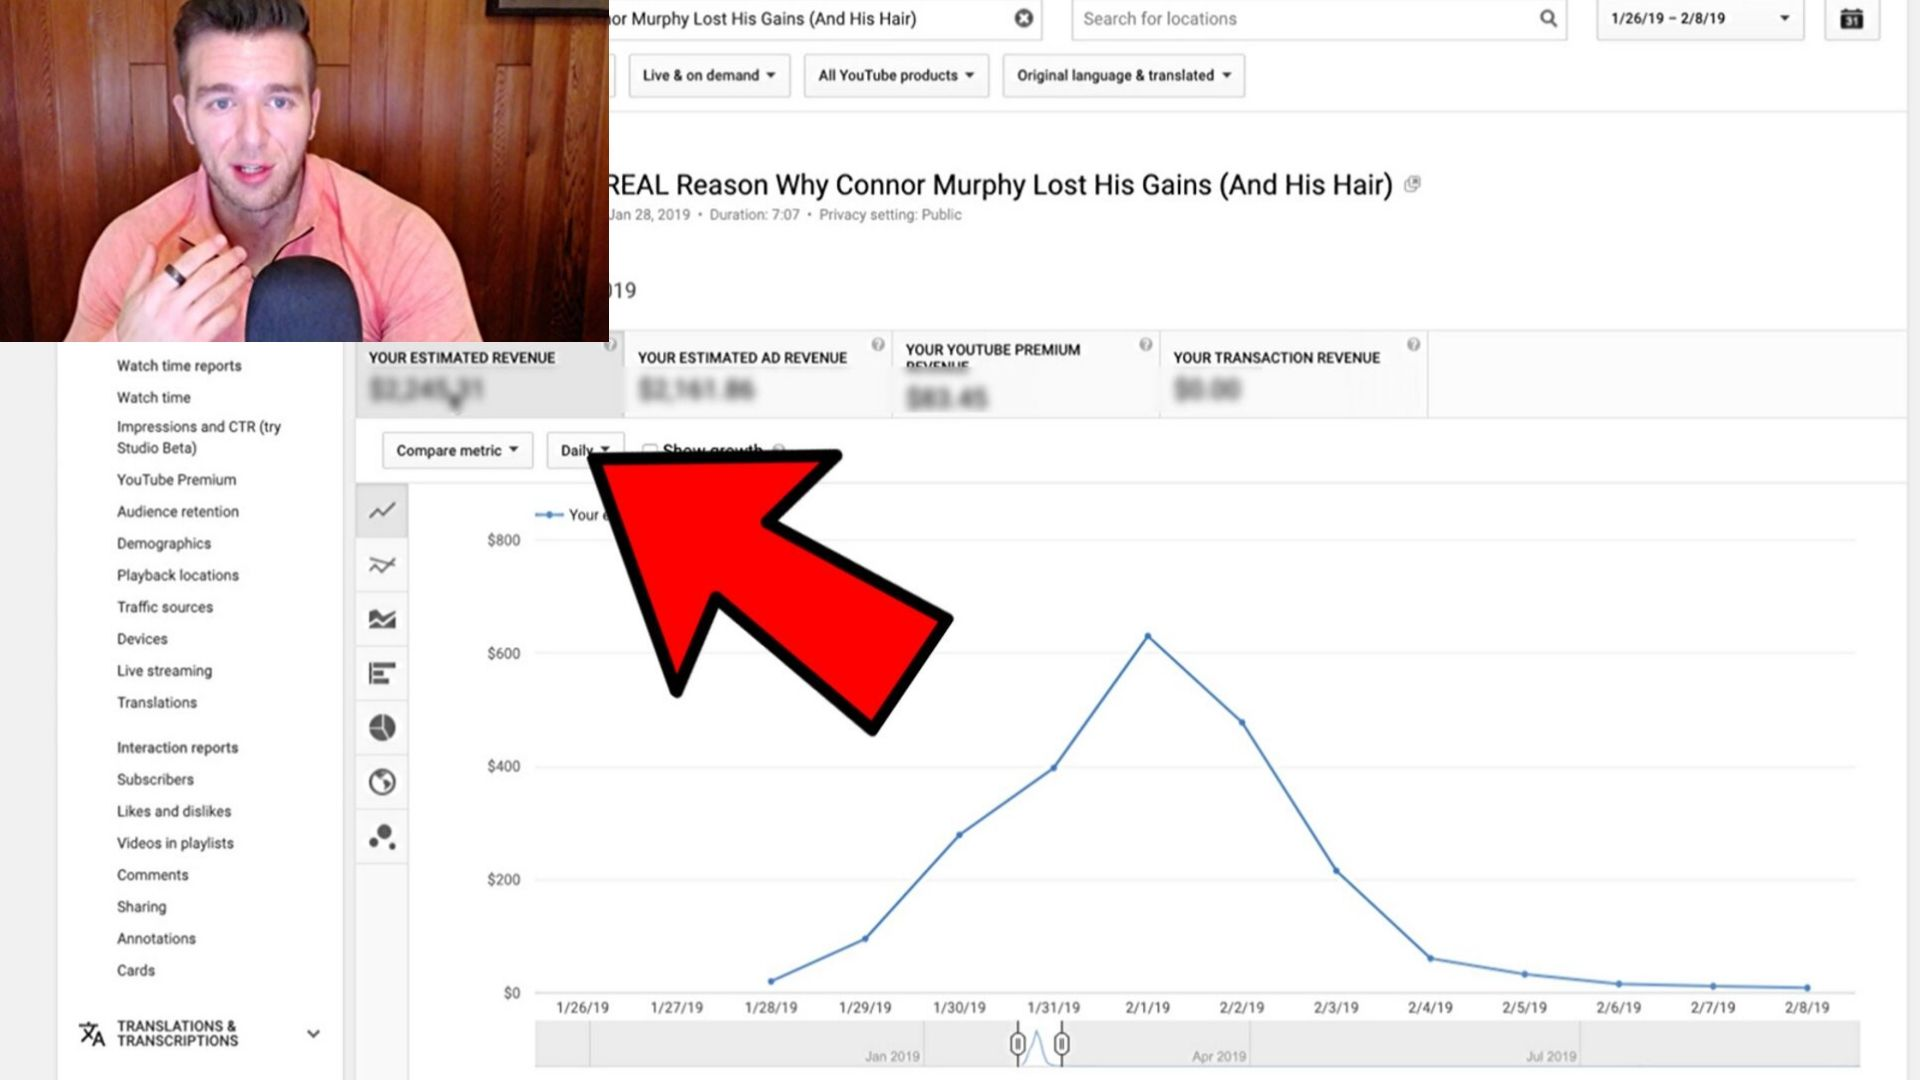 Derek his YouTube analytics and the revenue generated by a video with 1 million views in Canada